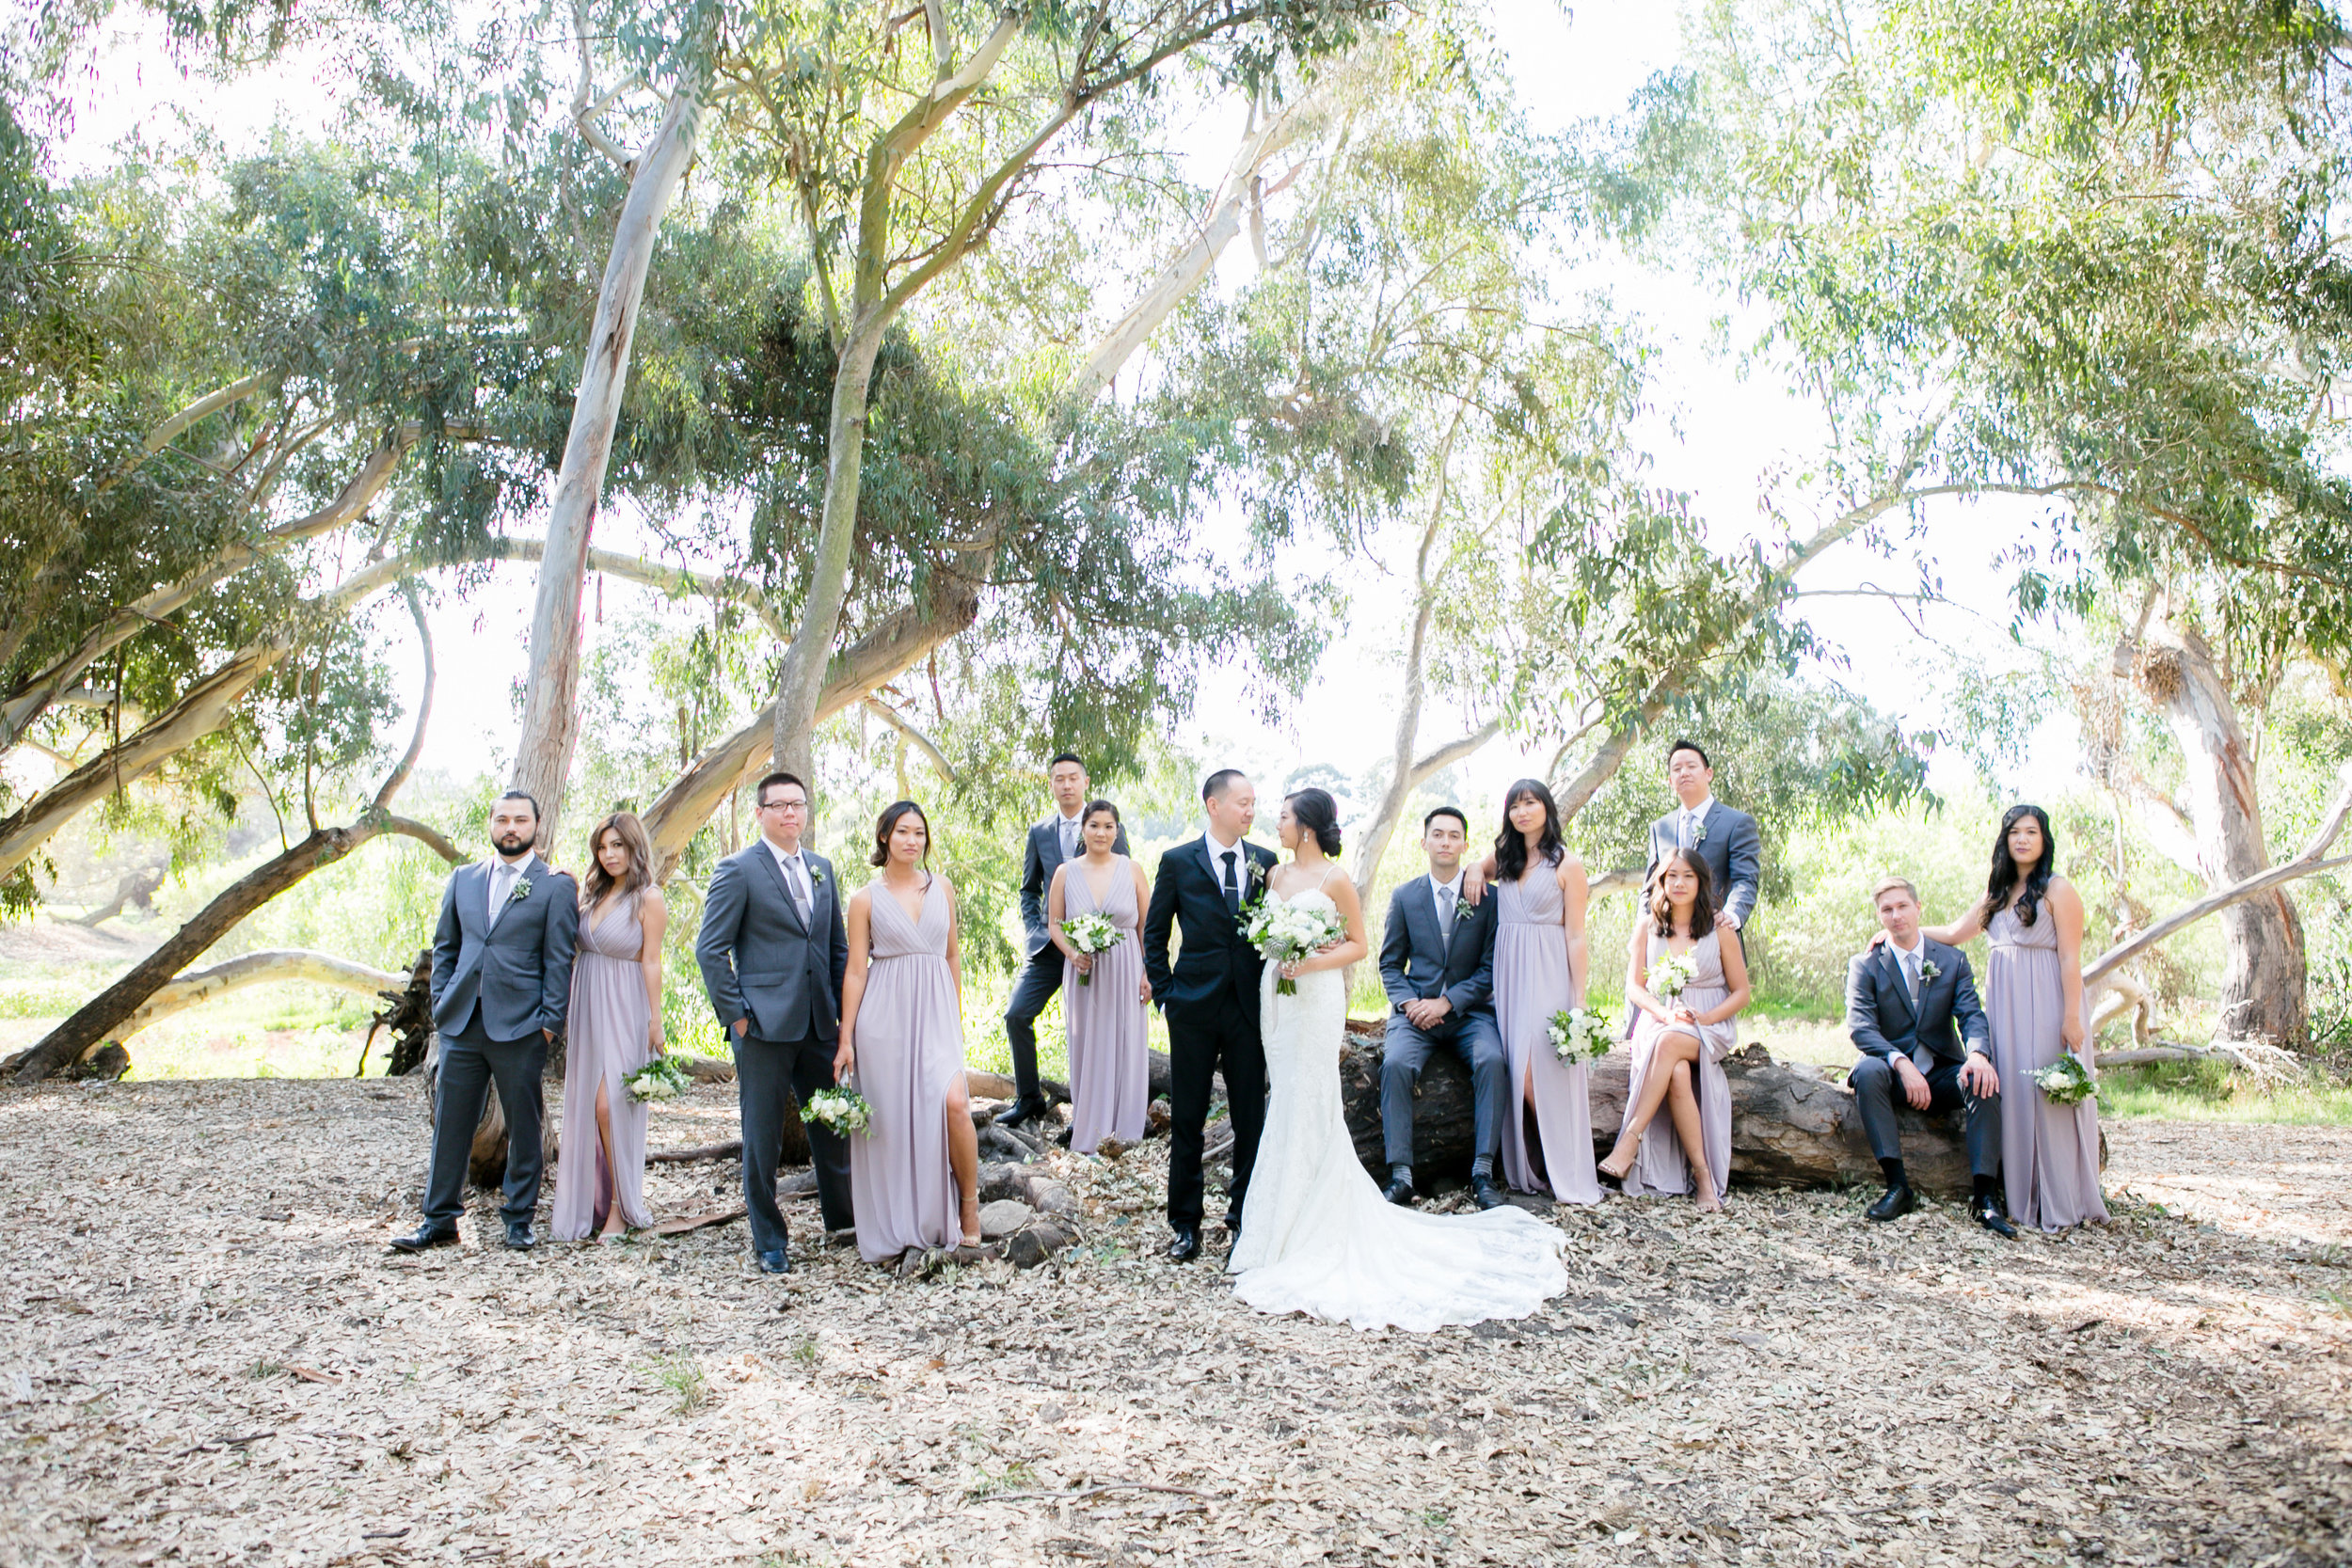 HuntingtonBeachWedding-KristinaLeePhotography-578.jpg